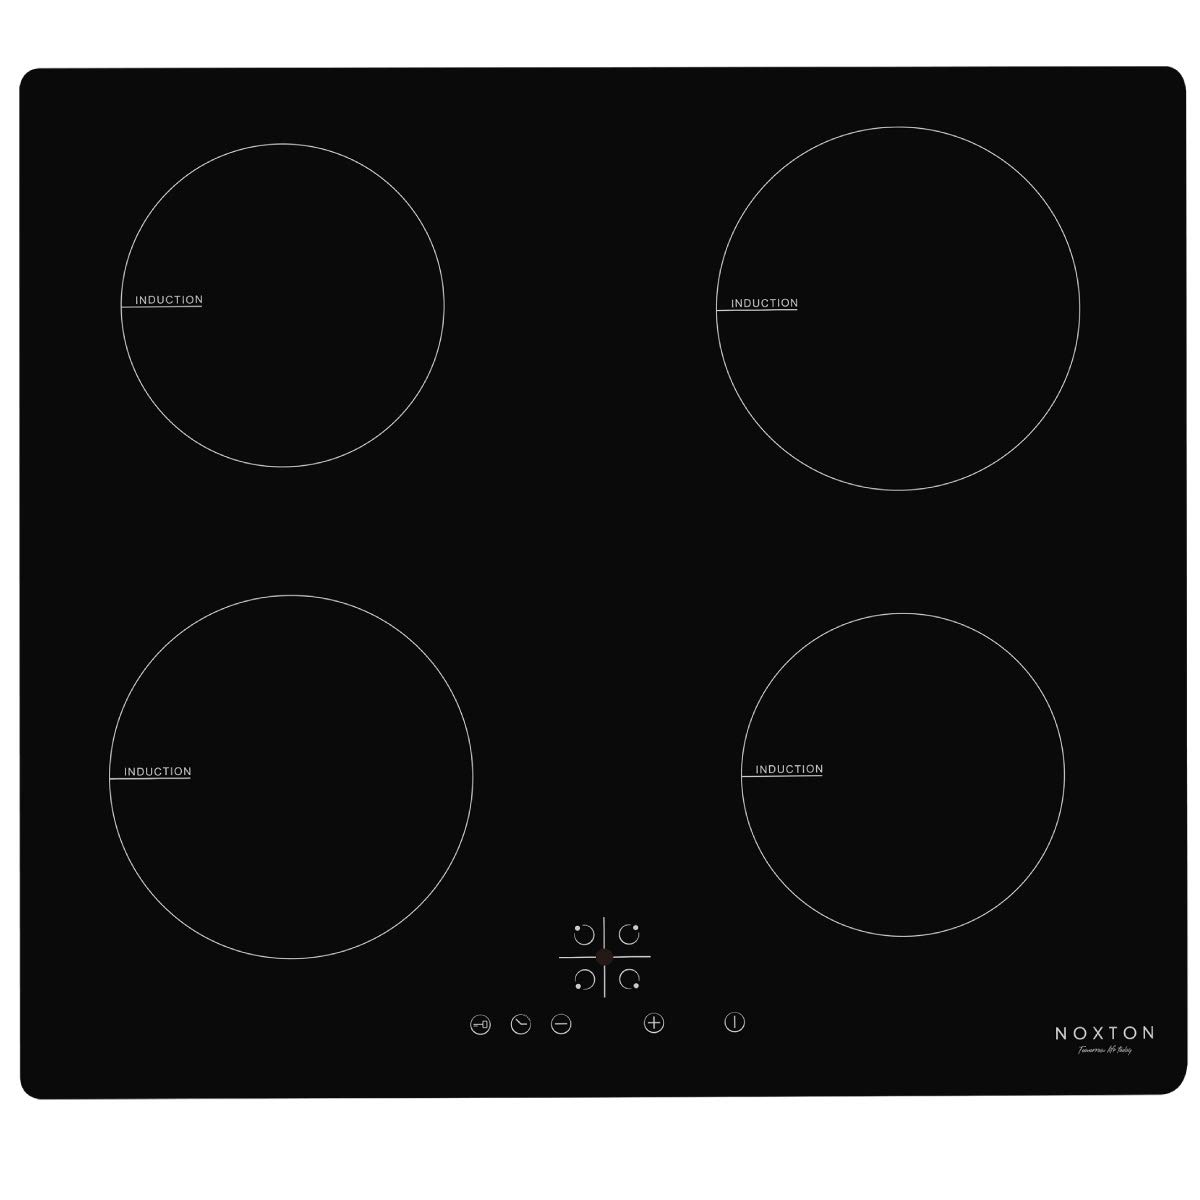 NOXTON 60cm Induction Hobs Black Glass Built-in 4 Zone Domino Electric Hob Cooker with Sensor Touch Control ITS644B1/B